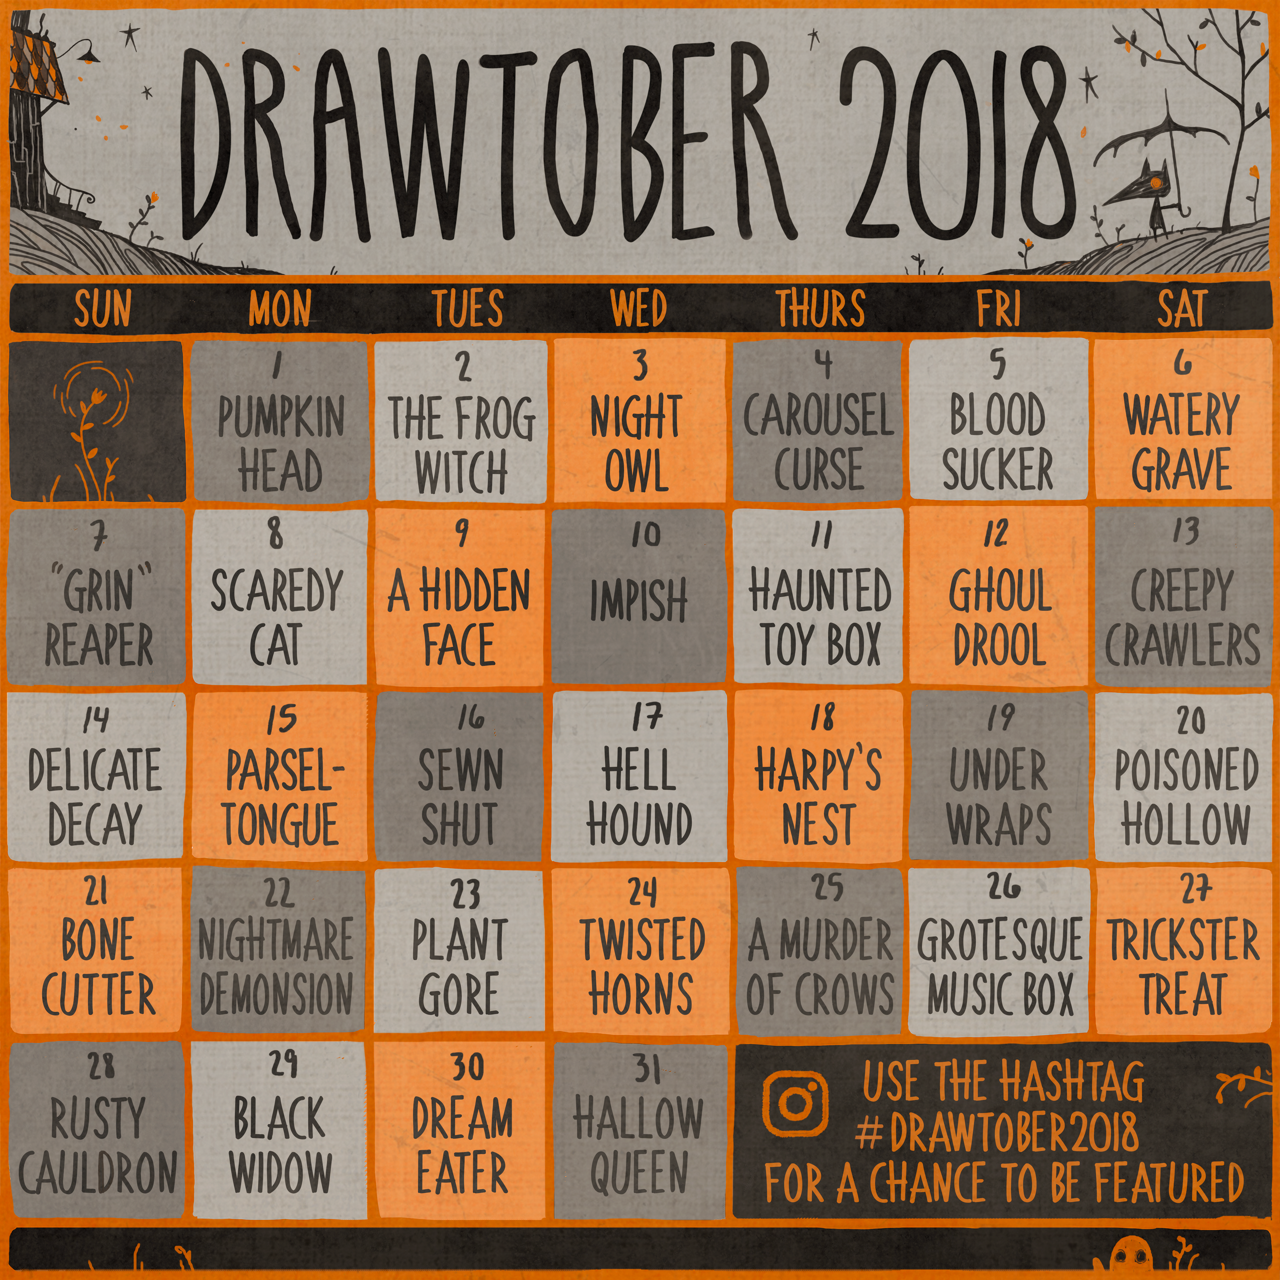 Pin By Preston S On Drawtober 2k18 With Images Drawing